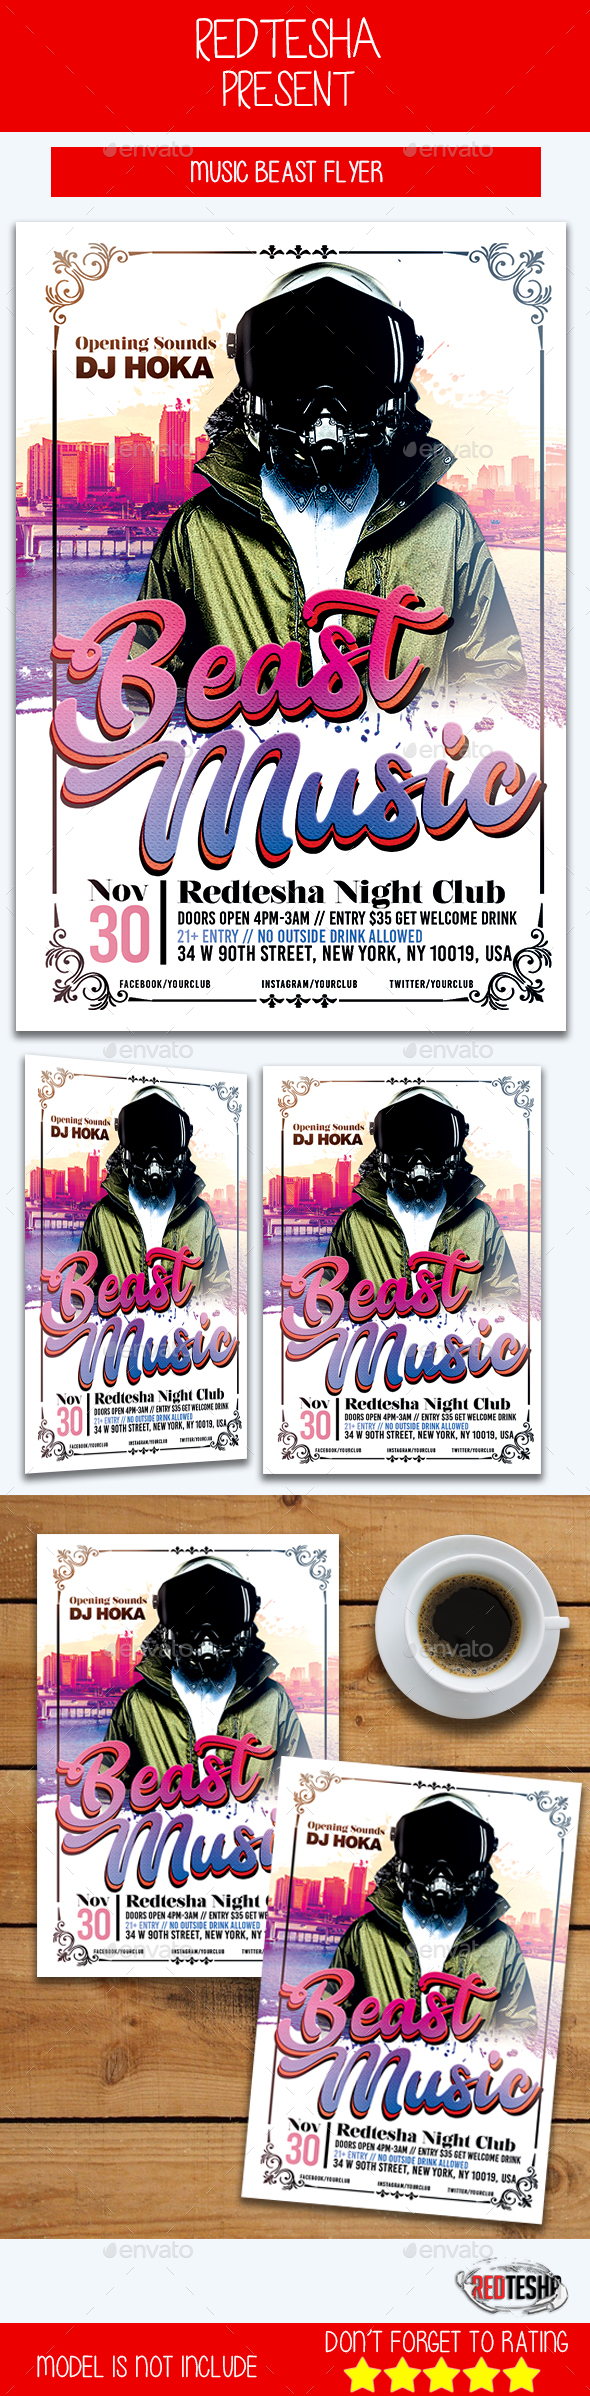 Music Beast Flyer - Events Flyers